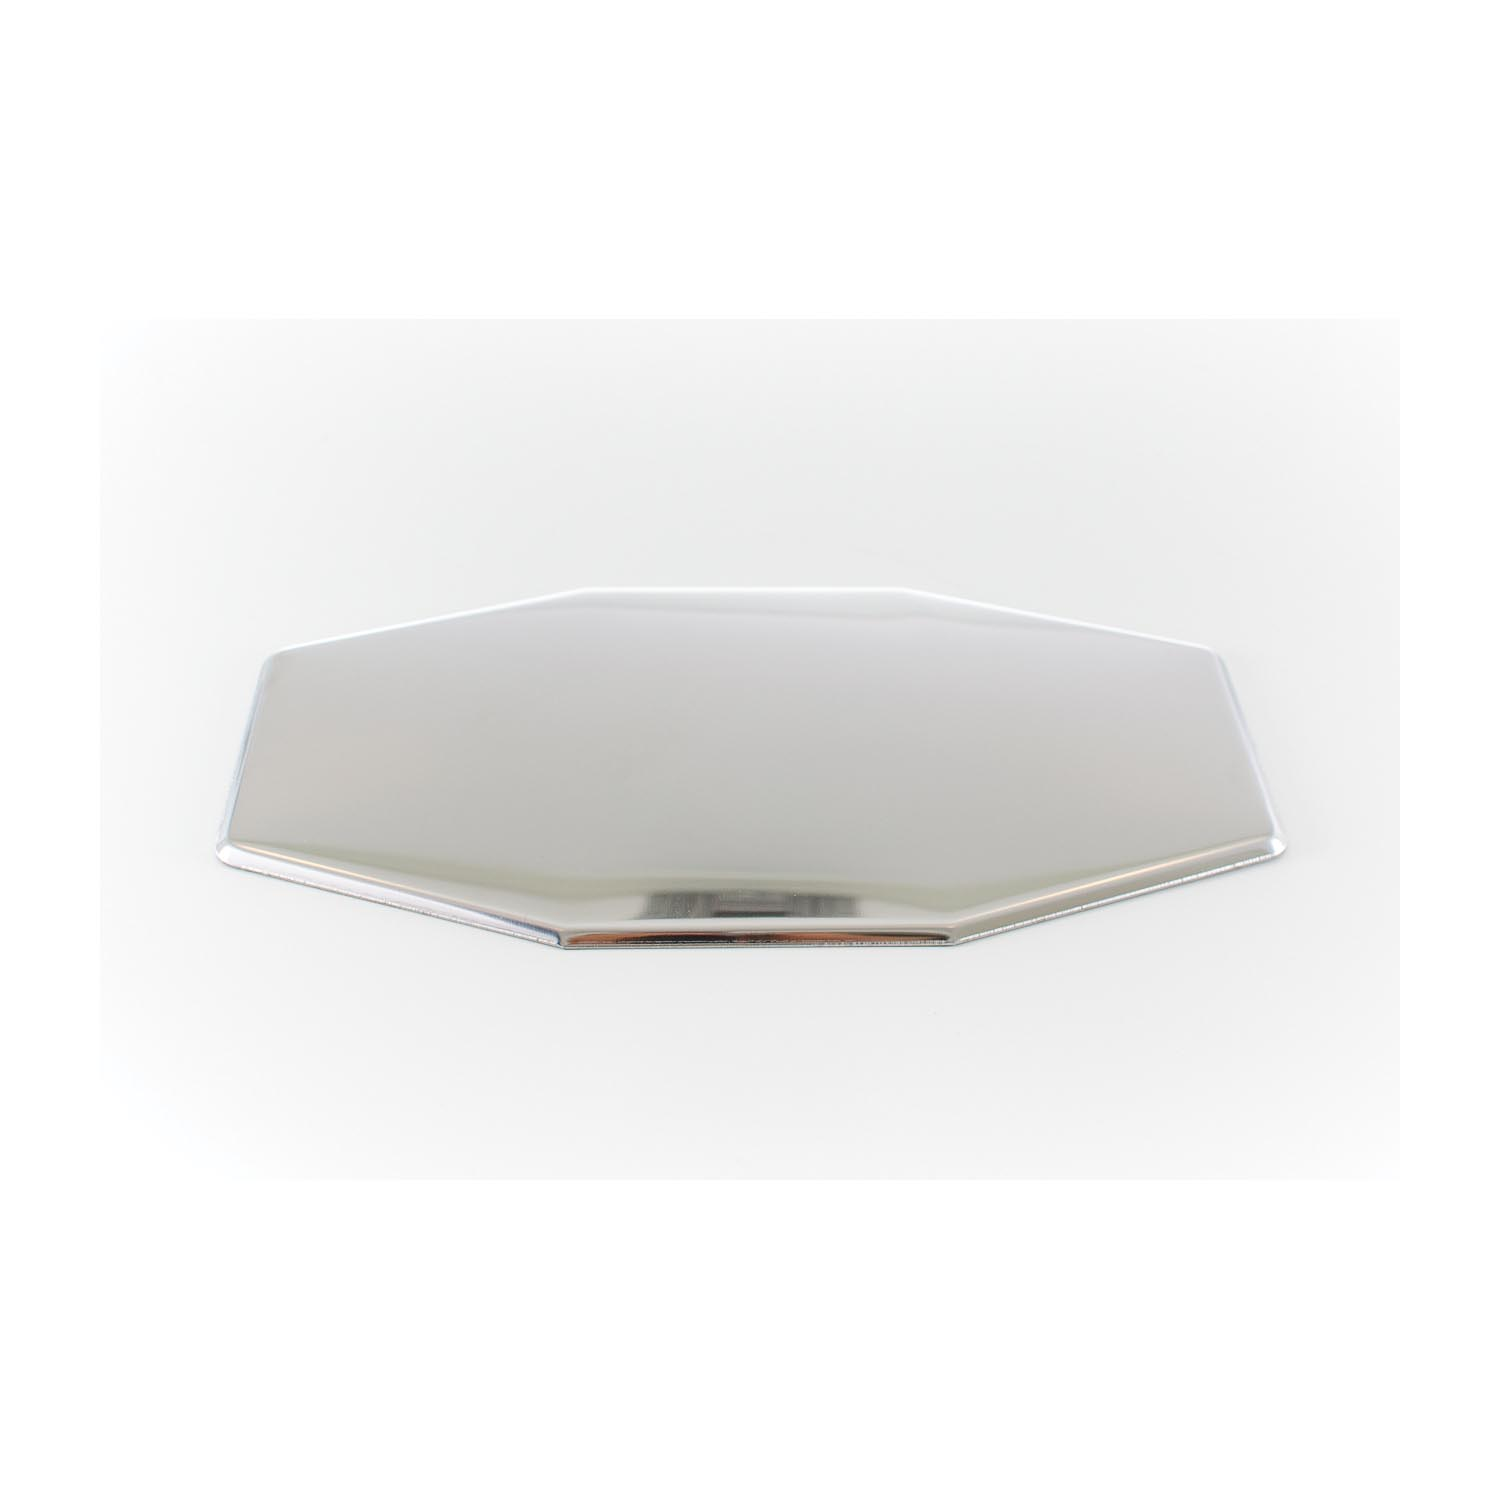 PASCO 820 Cover Plate, For Use With: Quick Shower Valve, Stainless Steel